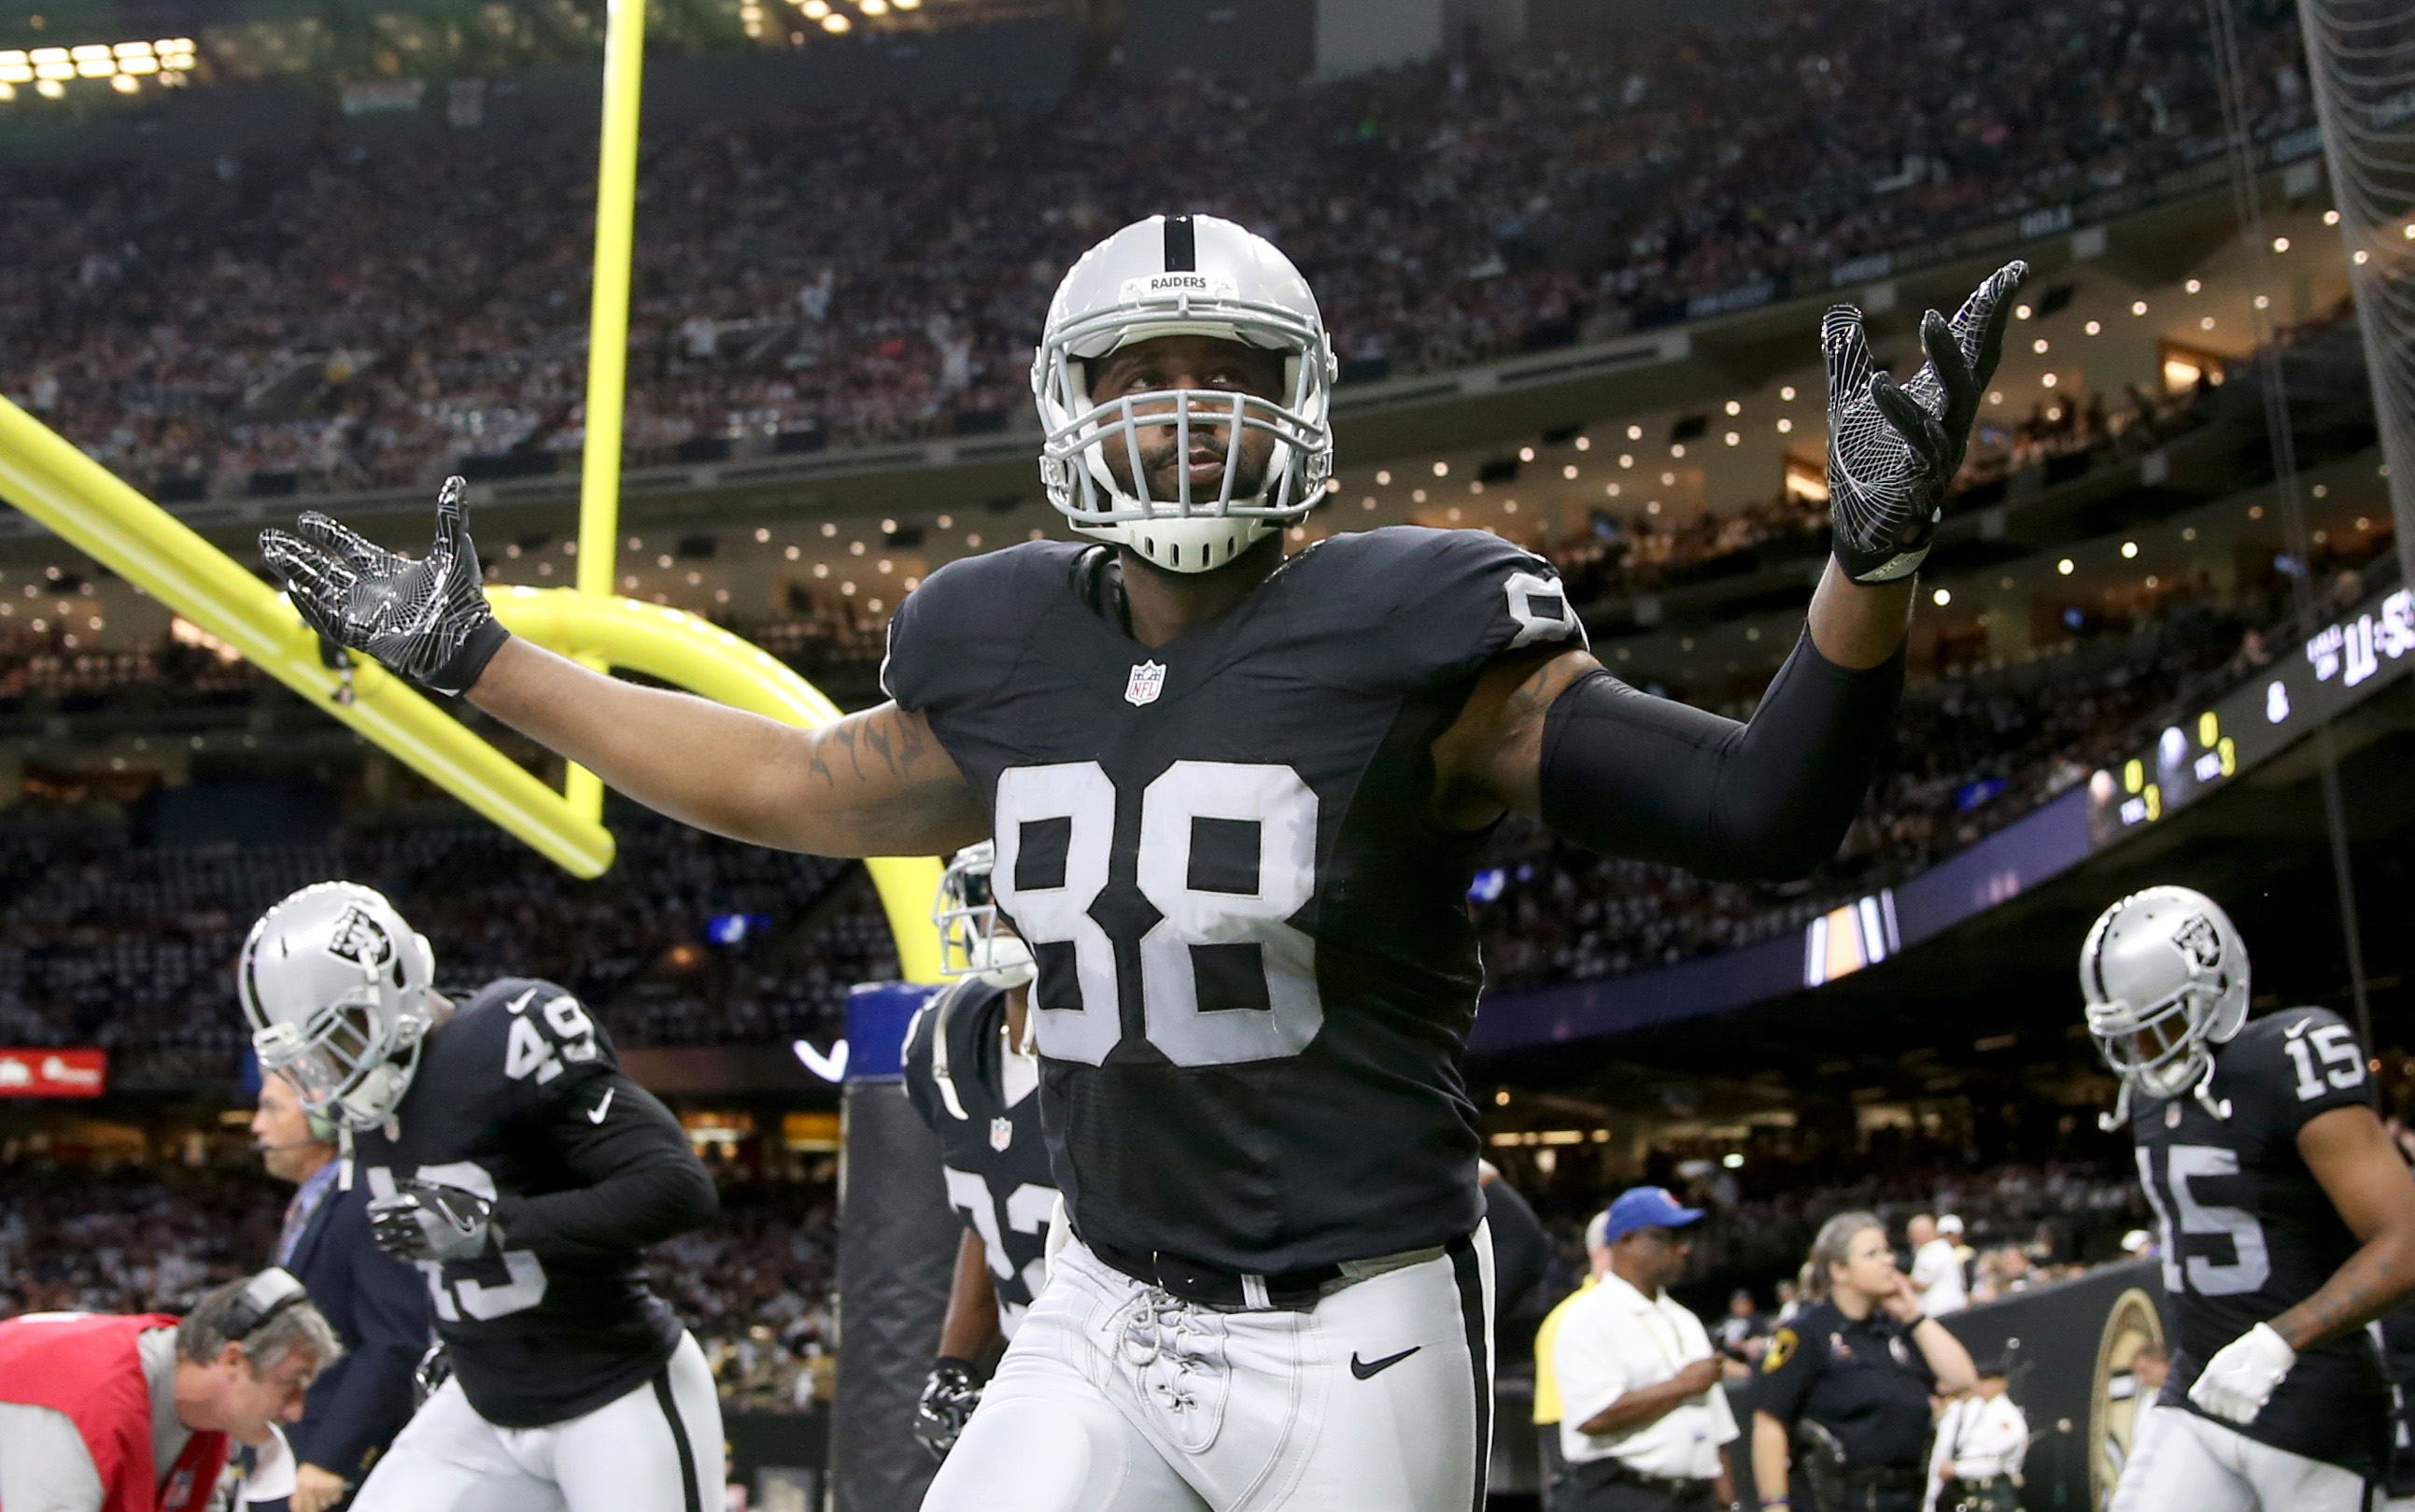 9548287-nfl-oakland-raiders-at-new-orleans-saints